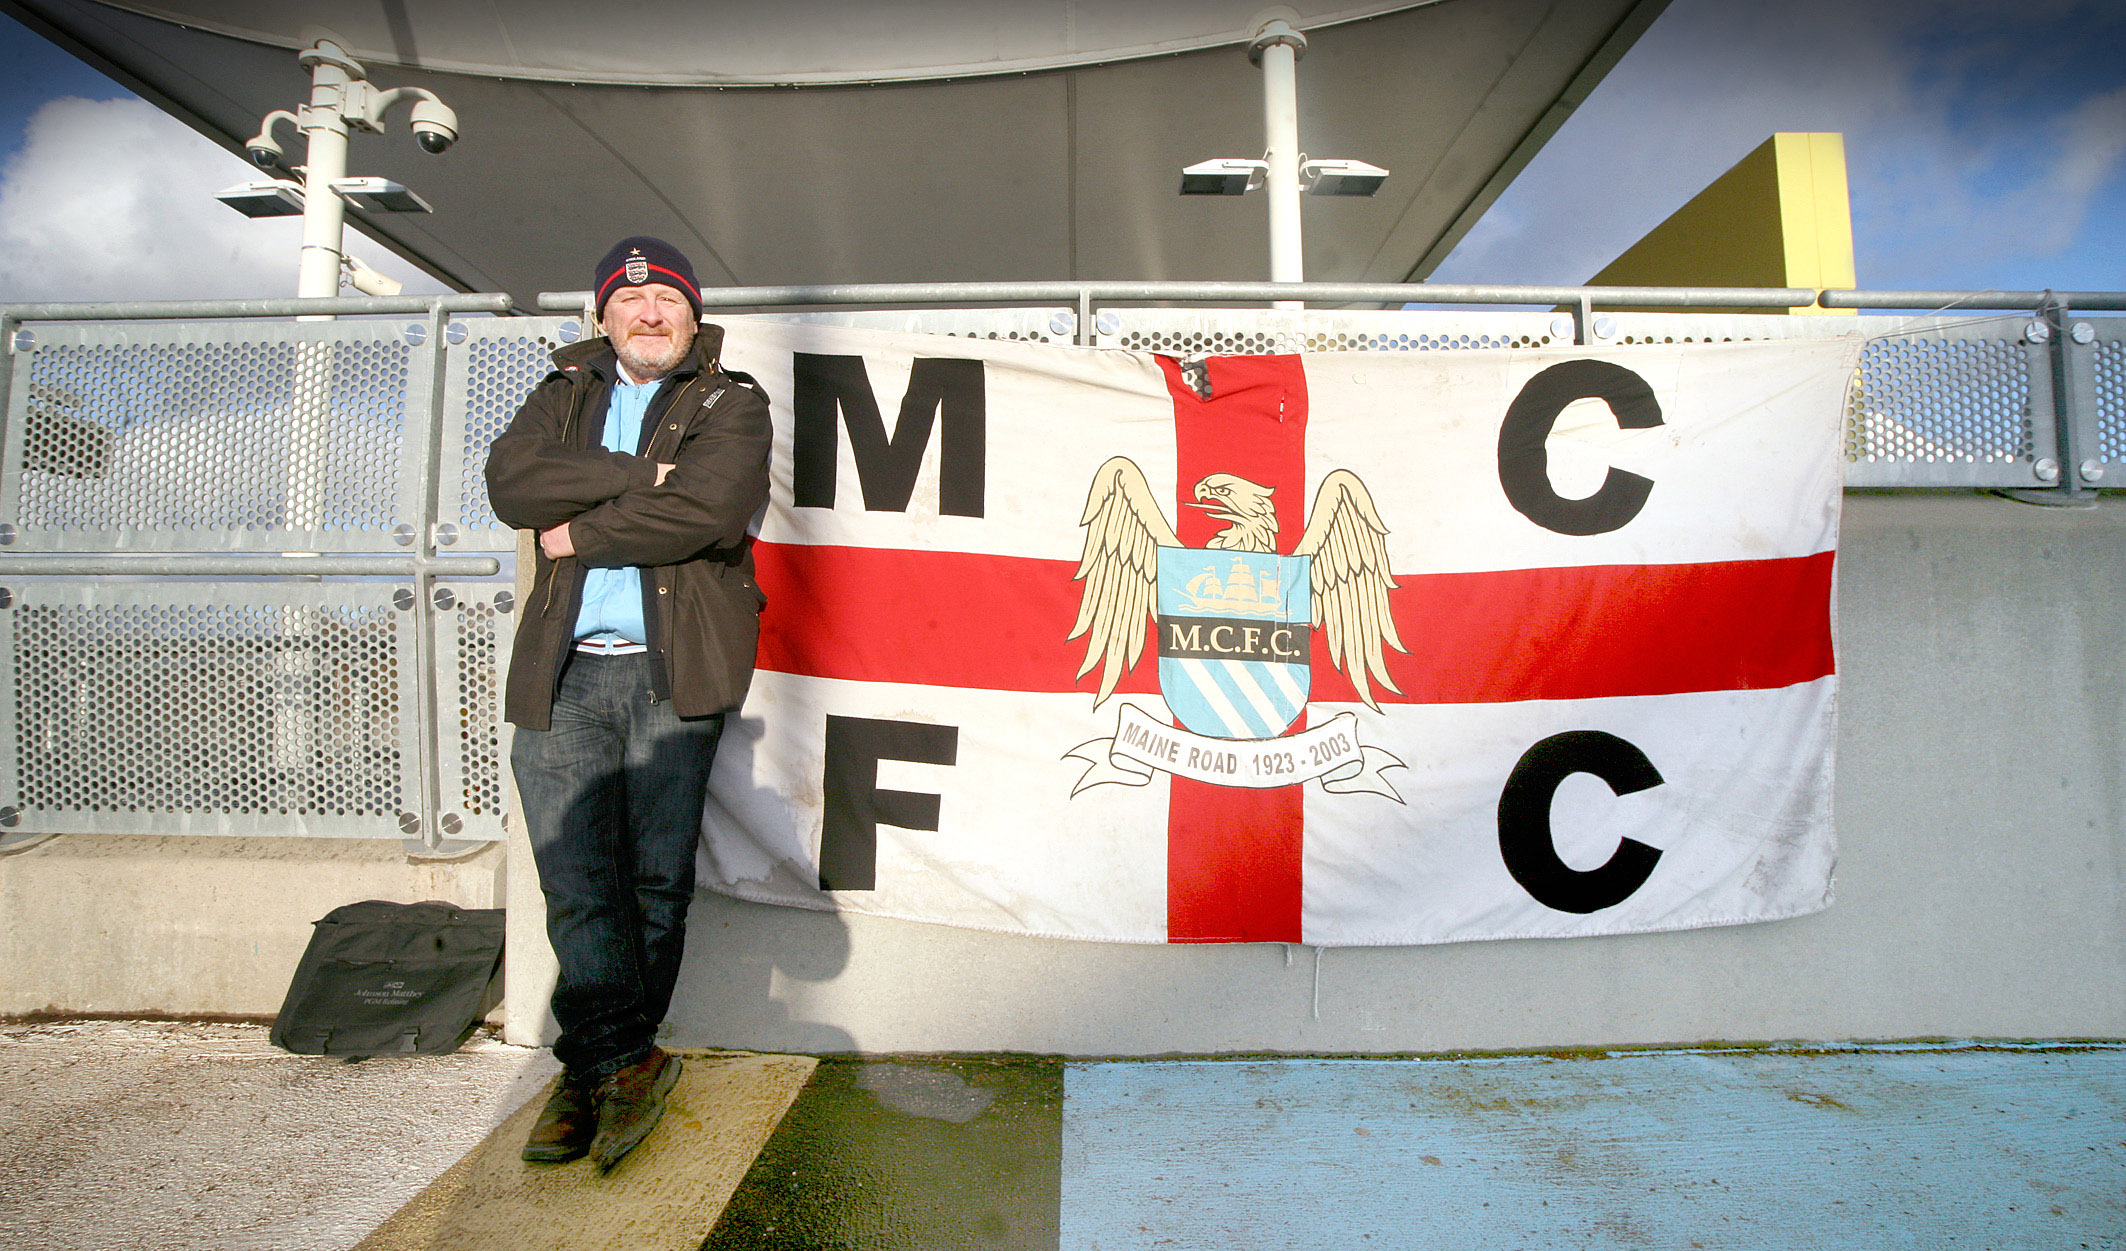 One man & his flag - Sean has been a City standard bearer for more than 40 years.